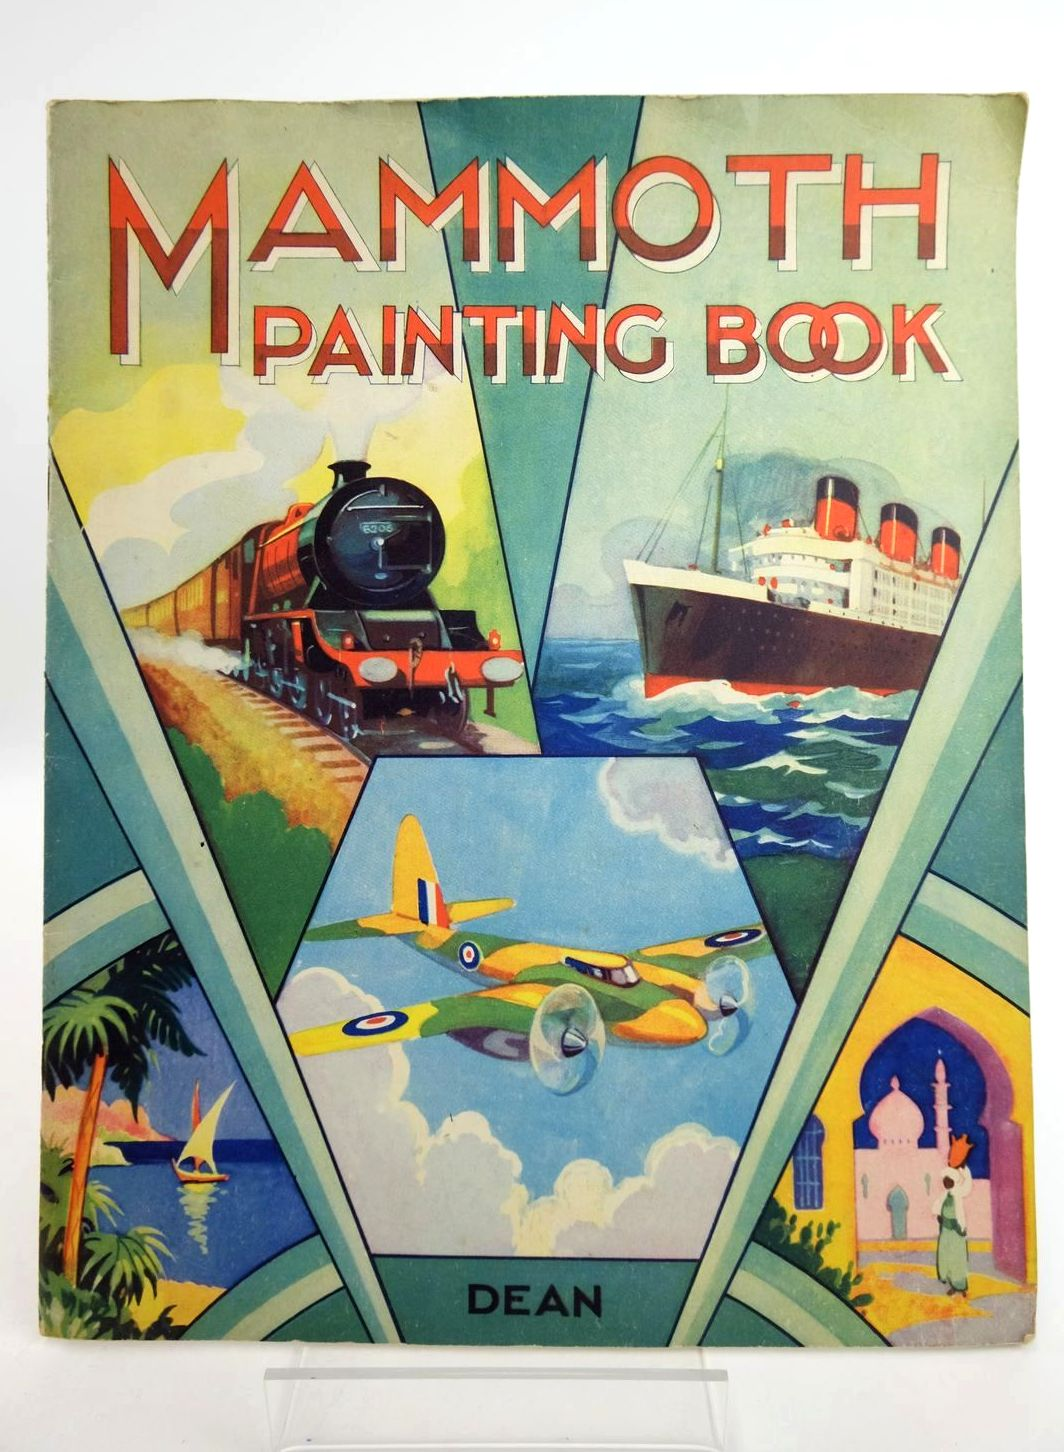 Photo of MAMMOTH PAINTING BOOK published by Dean & Son Ltd. (STOCK CODE: 1318775)  for sale by Stella & Rose's Books